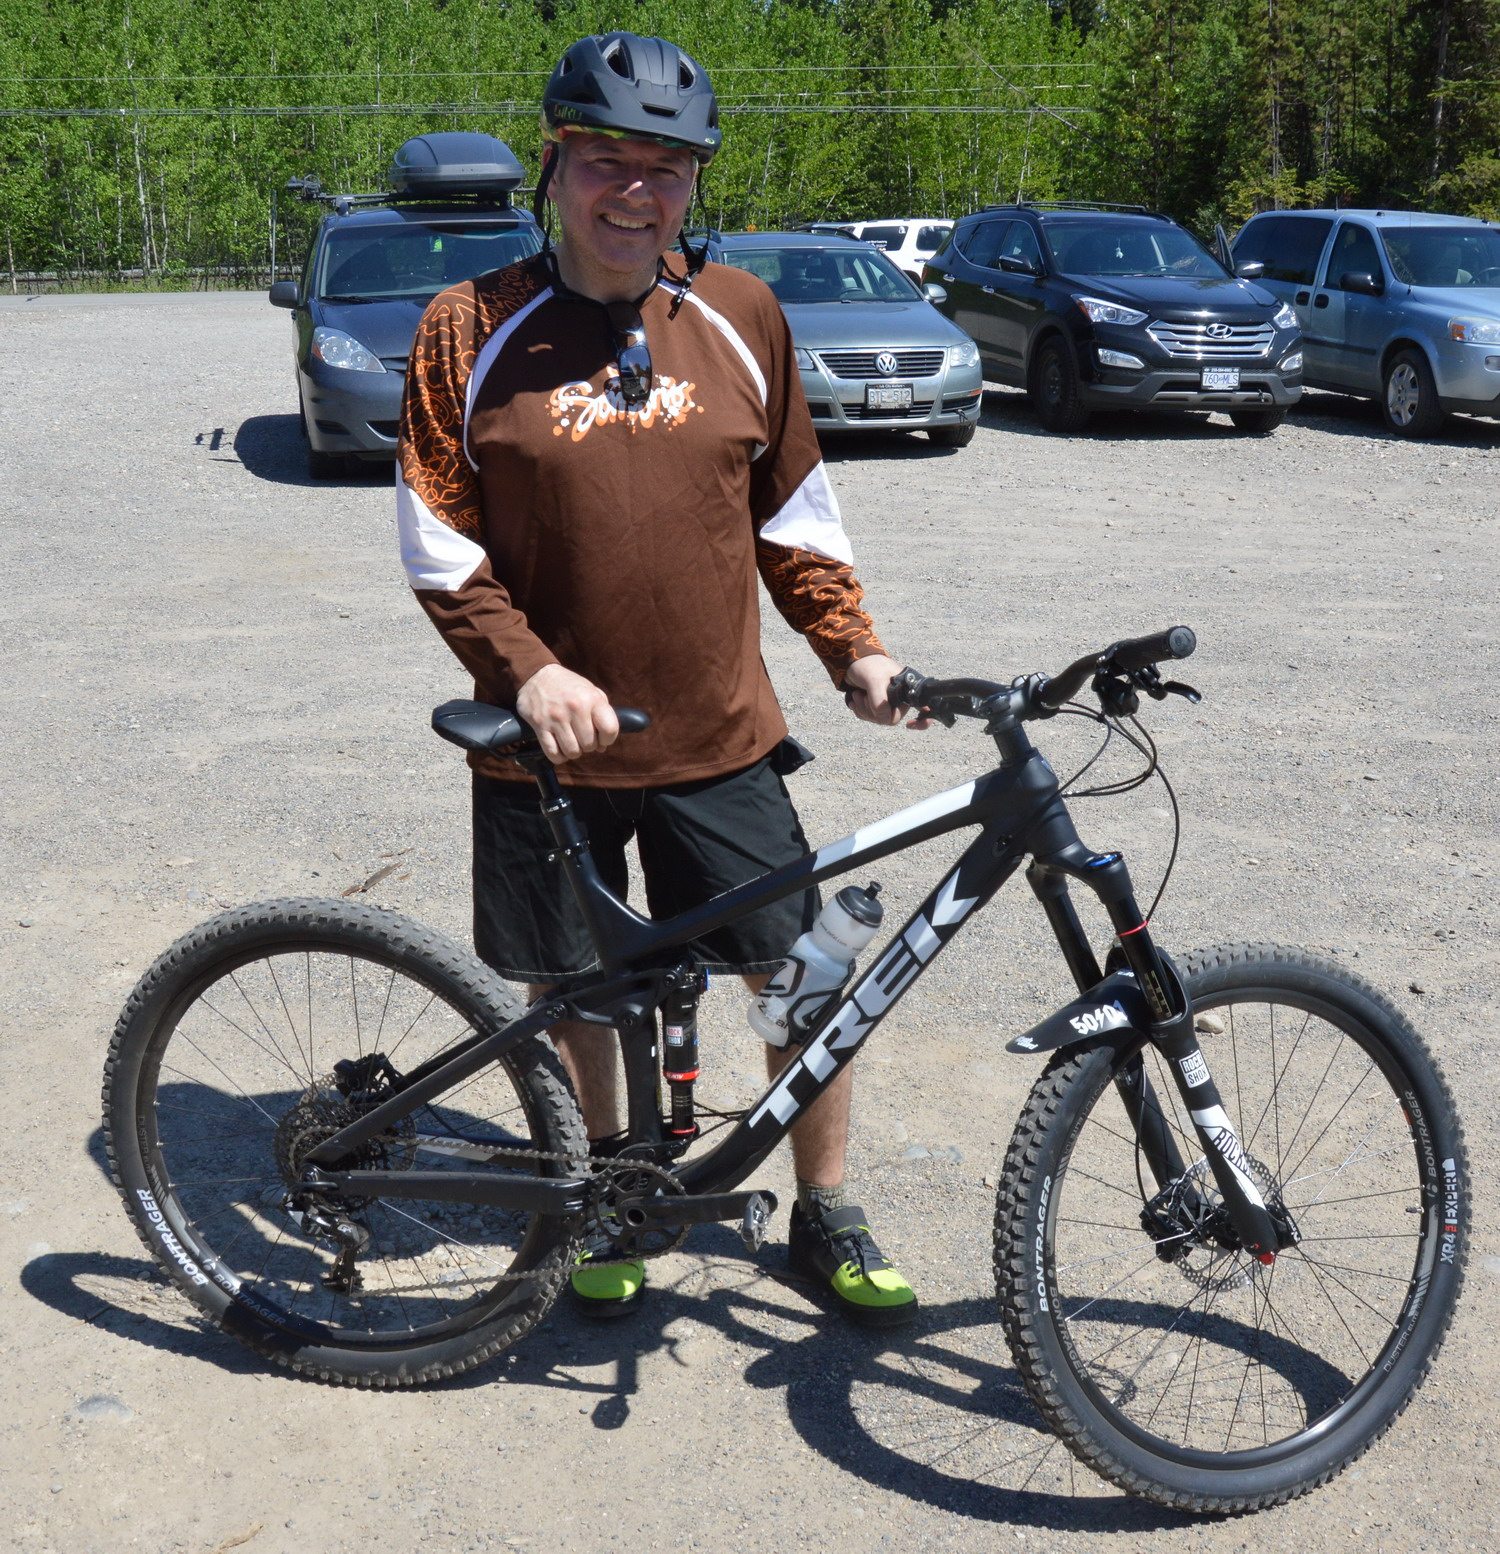 Conway Fisher with his Trek mountain bike was the lucky 1000th registrant in the RCMP's bike registry program. RCMP photo